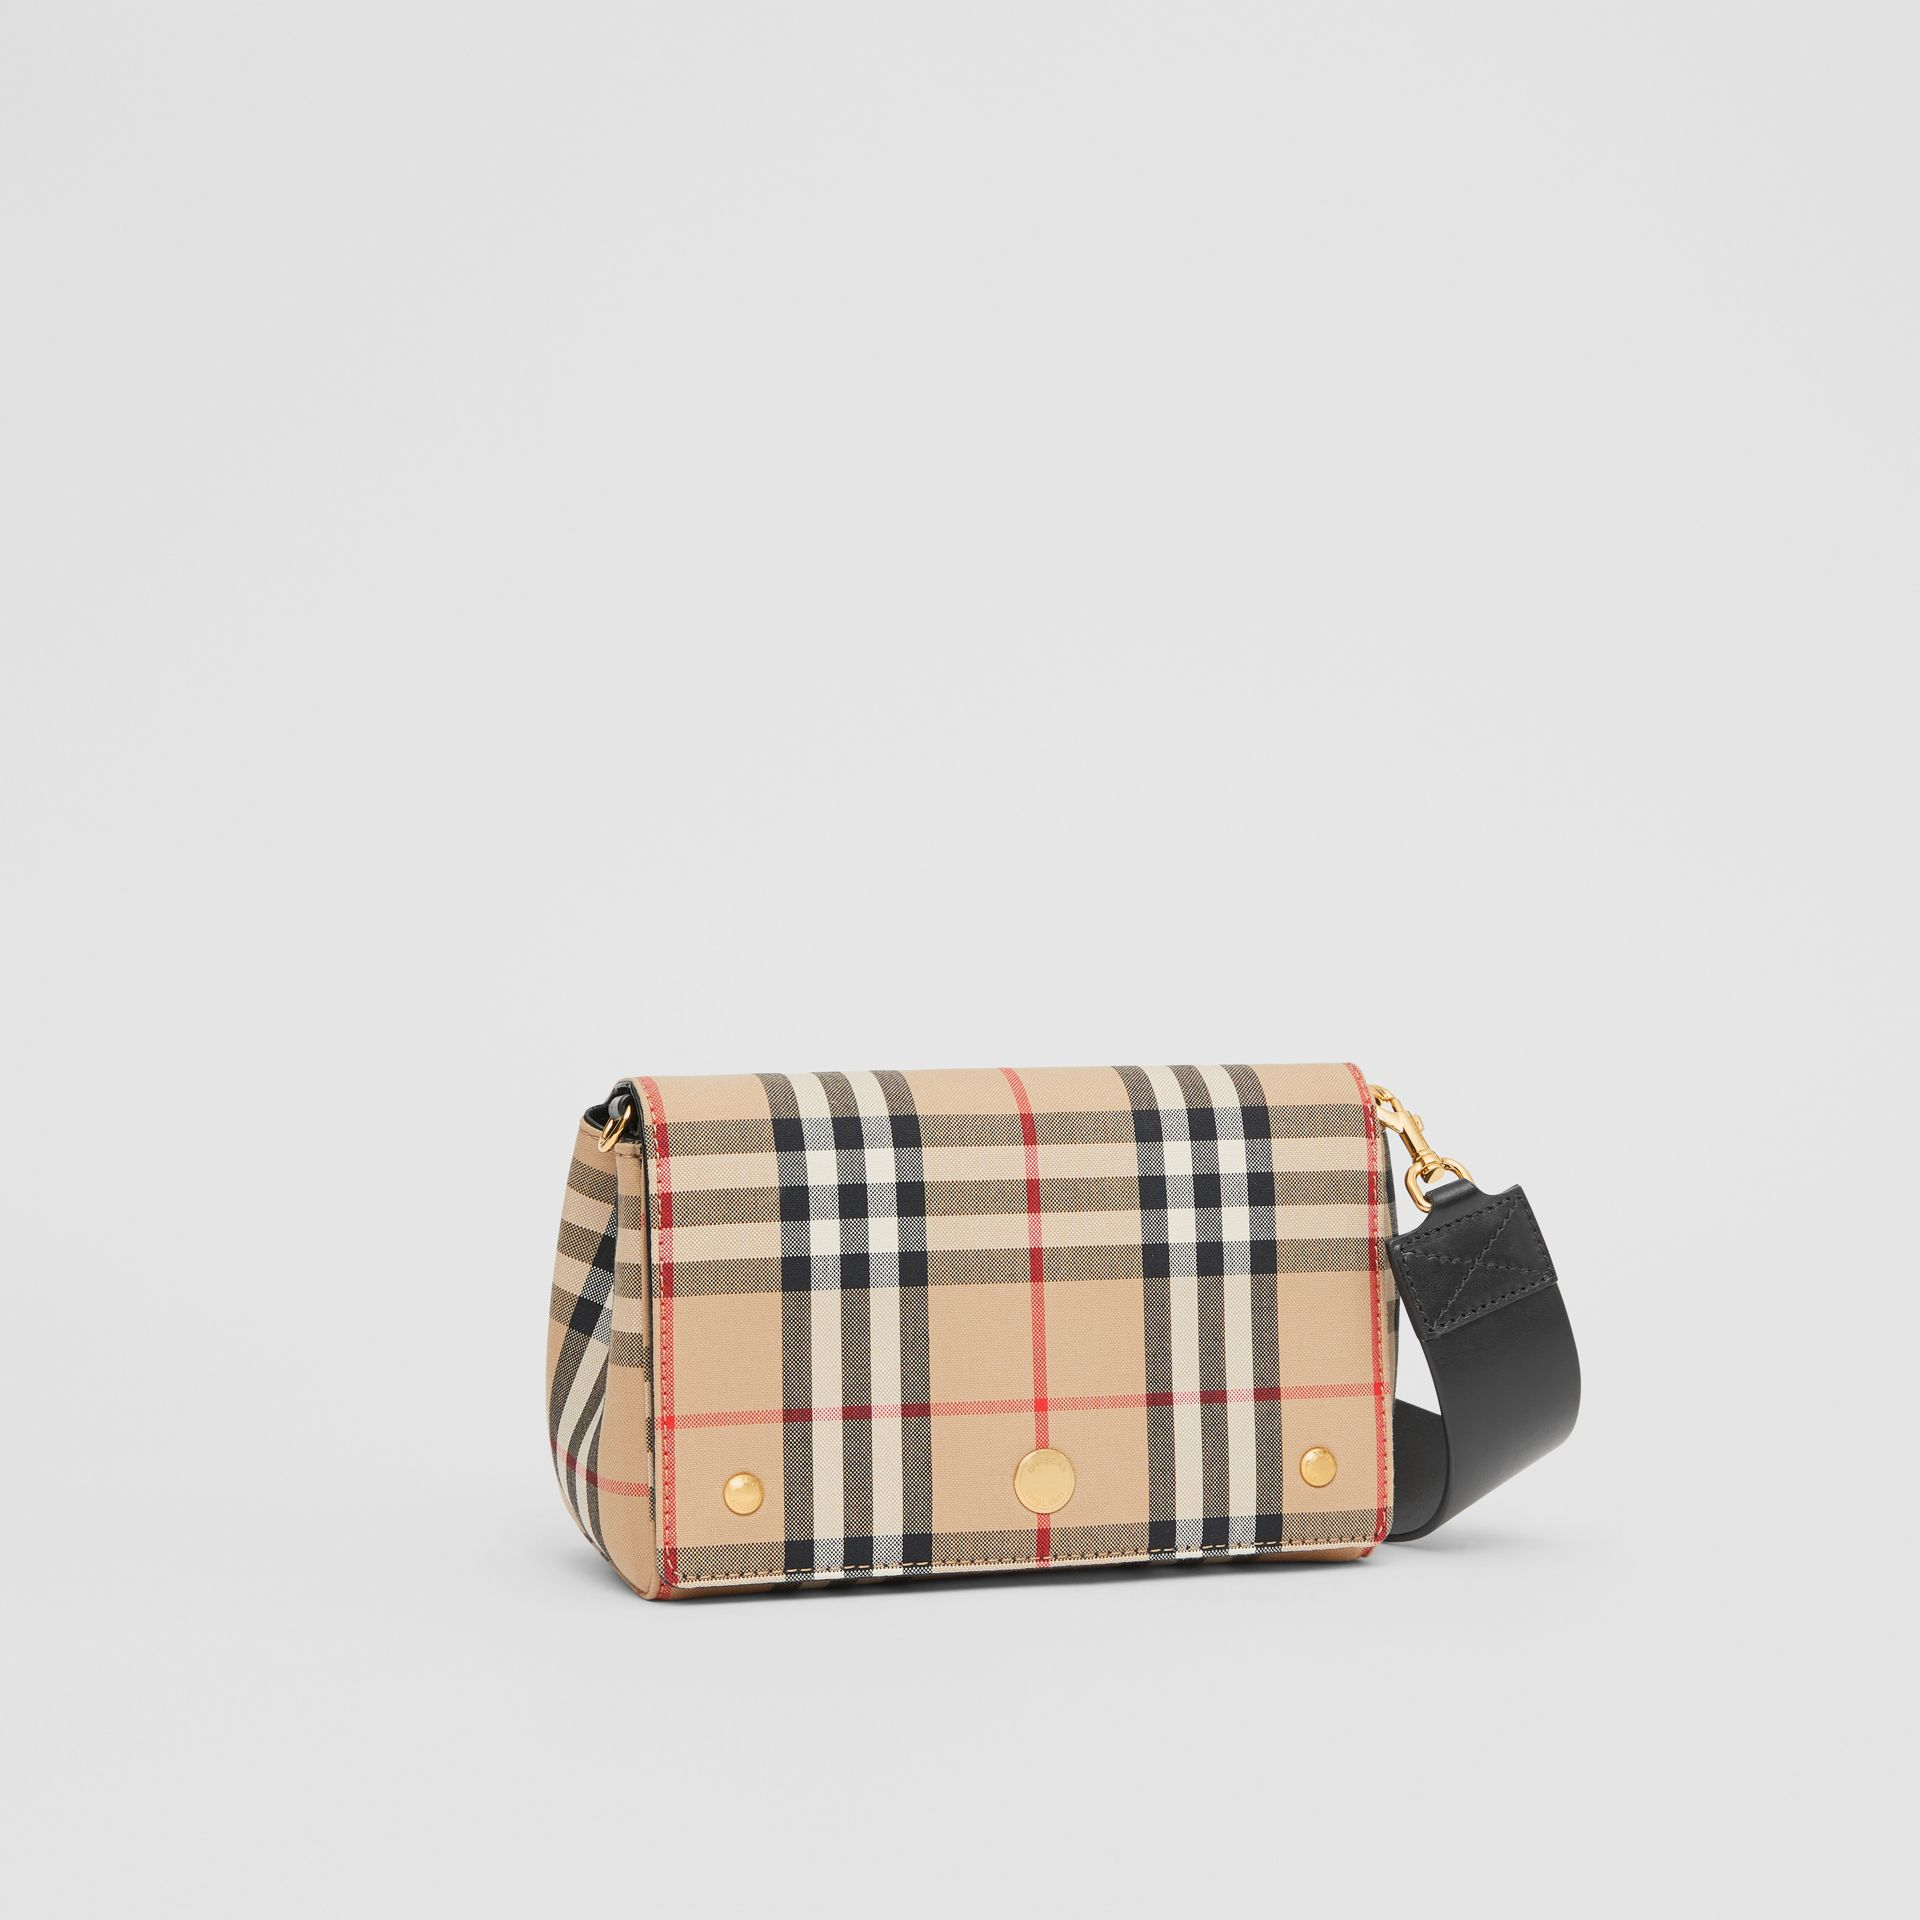 Vintage Check and Leather Note Crossbody Bag in Archive Beige/black | Burberry - gallery image 6